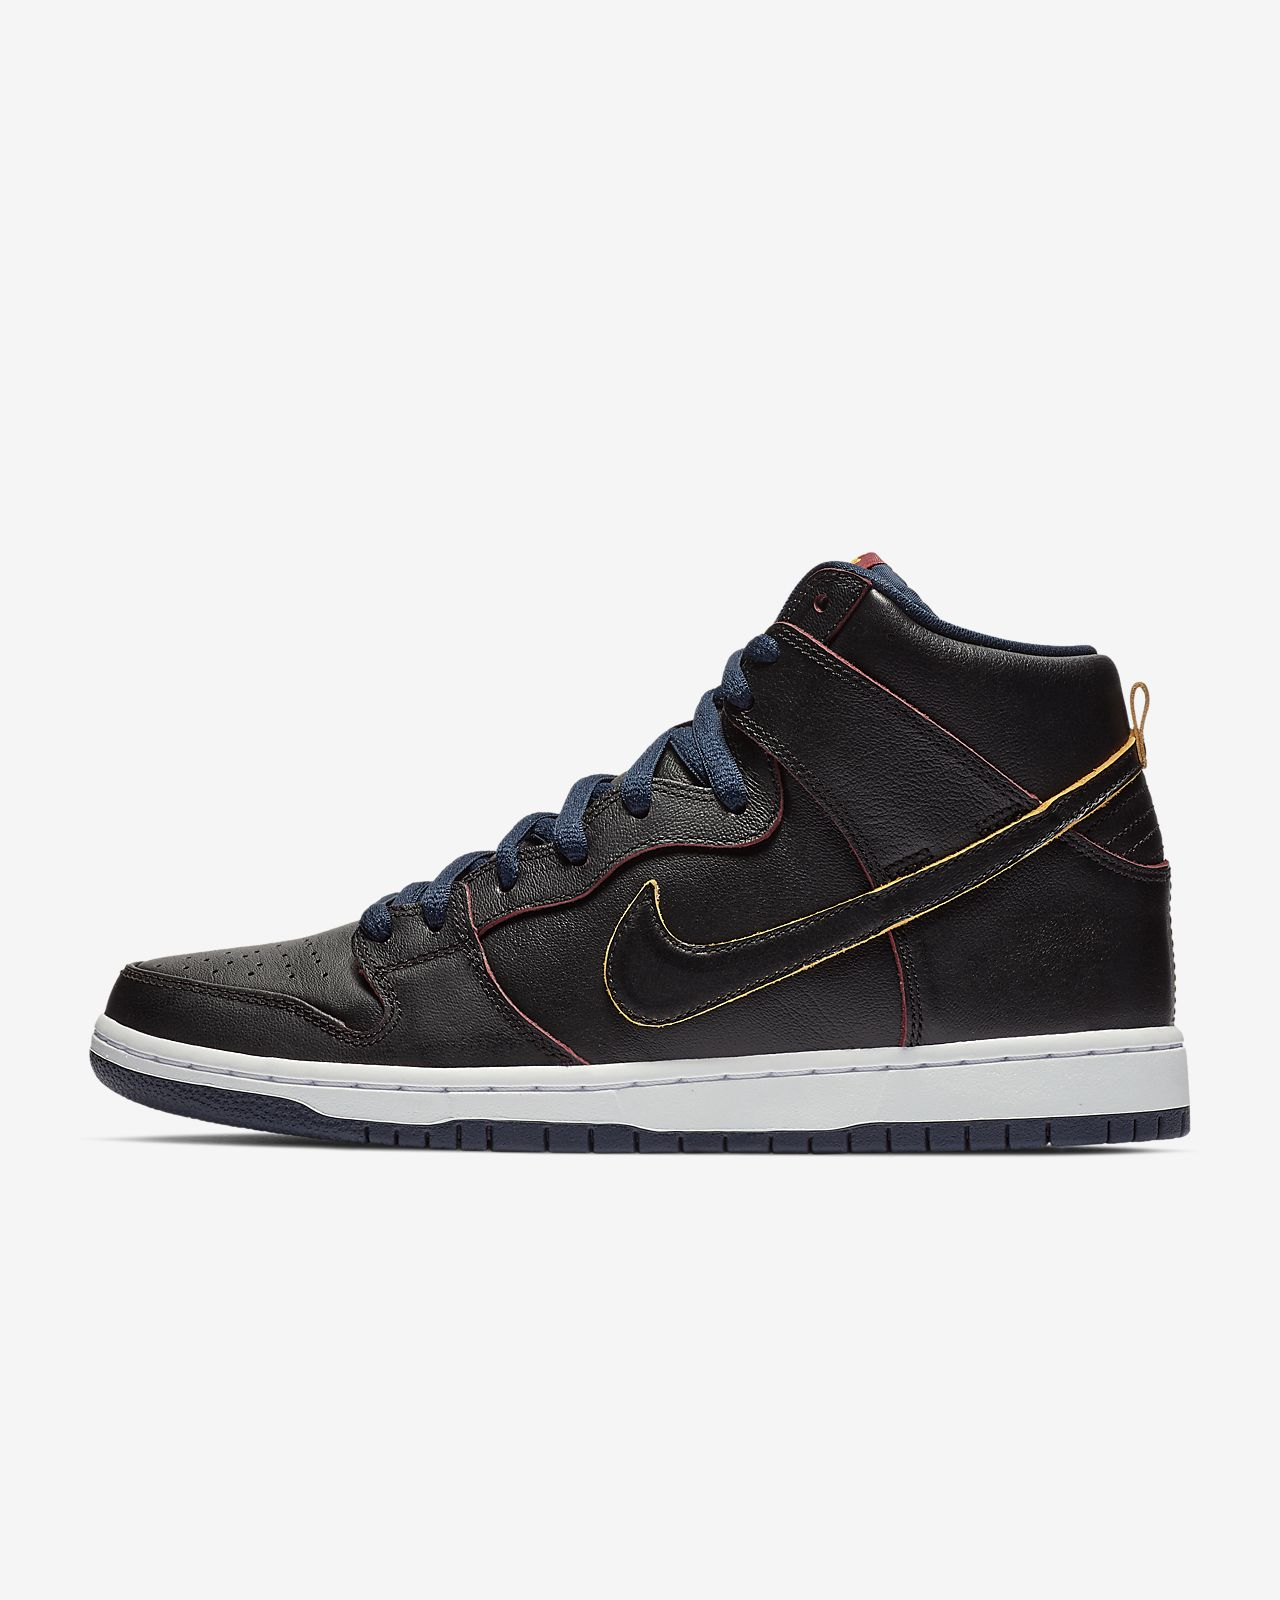 Nike SB Dunk High Pro NBA Men's Skate Shoe